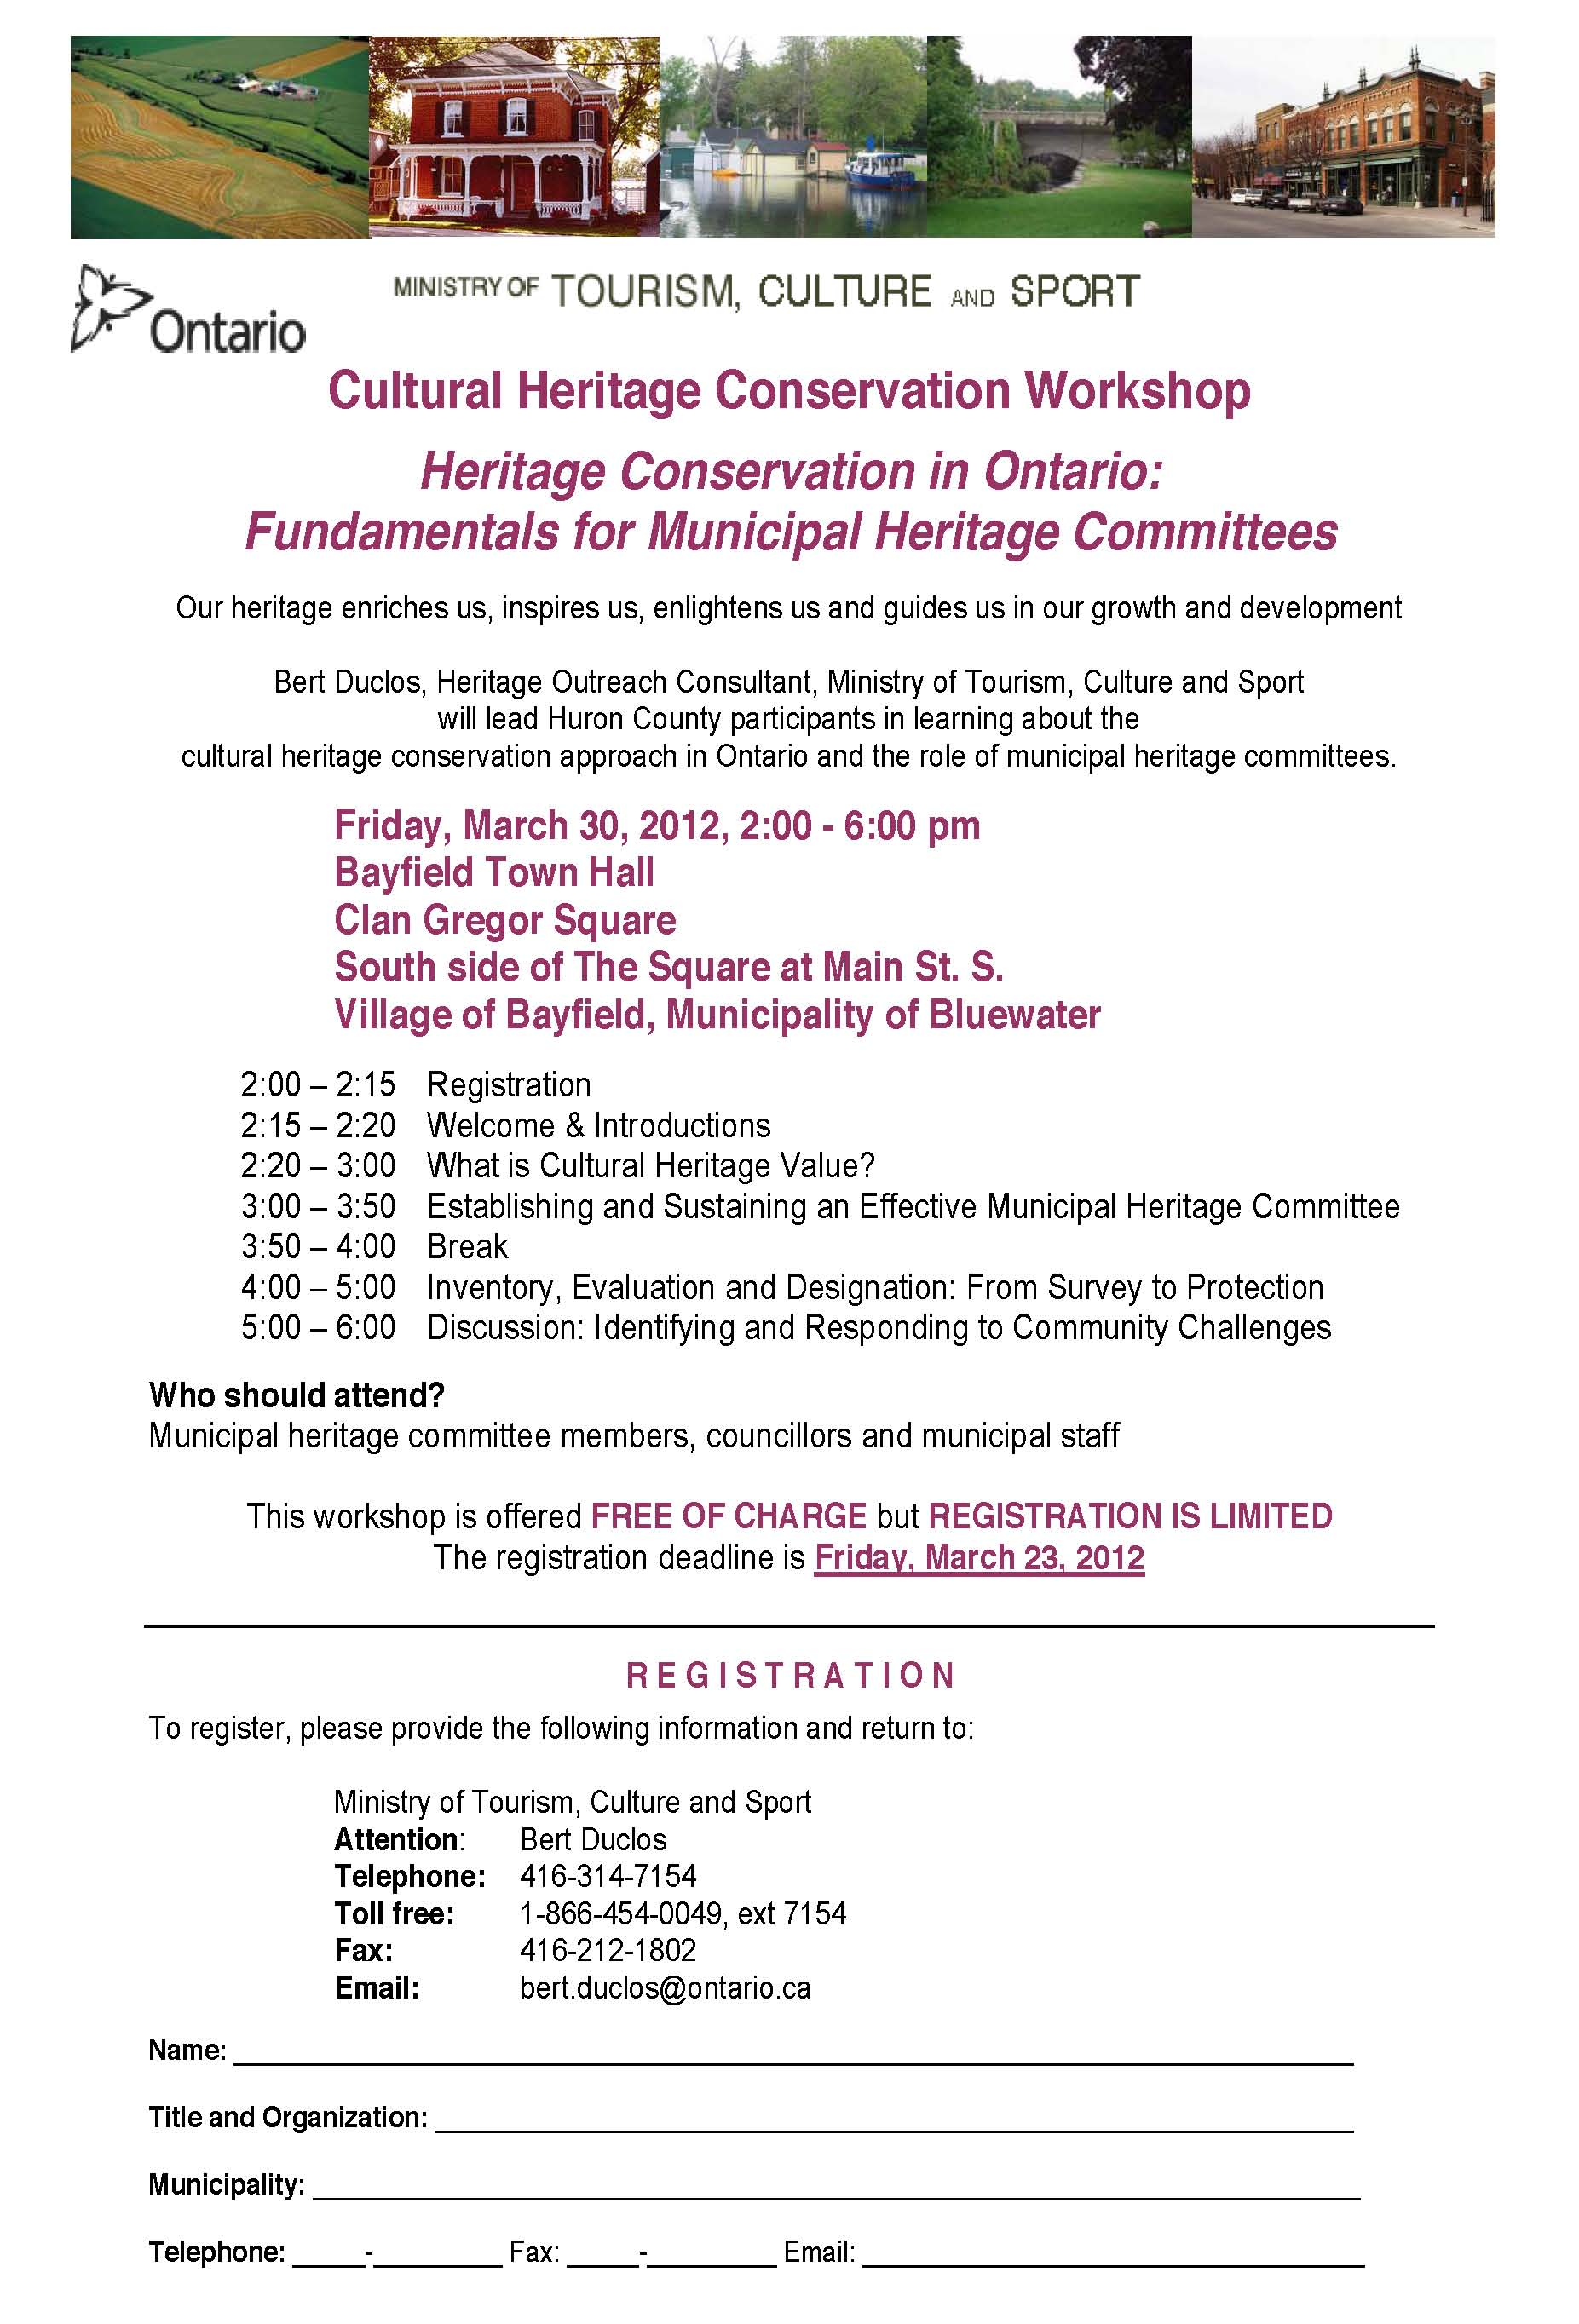 670e4-huron_county_workshop_flyer_-_30mar12.jpg